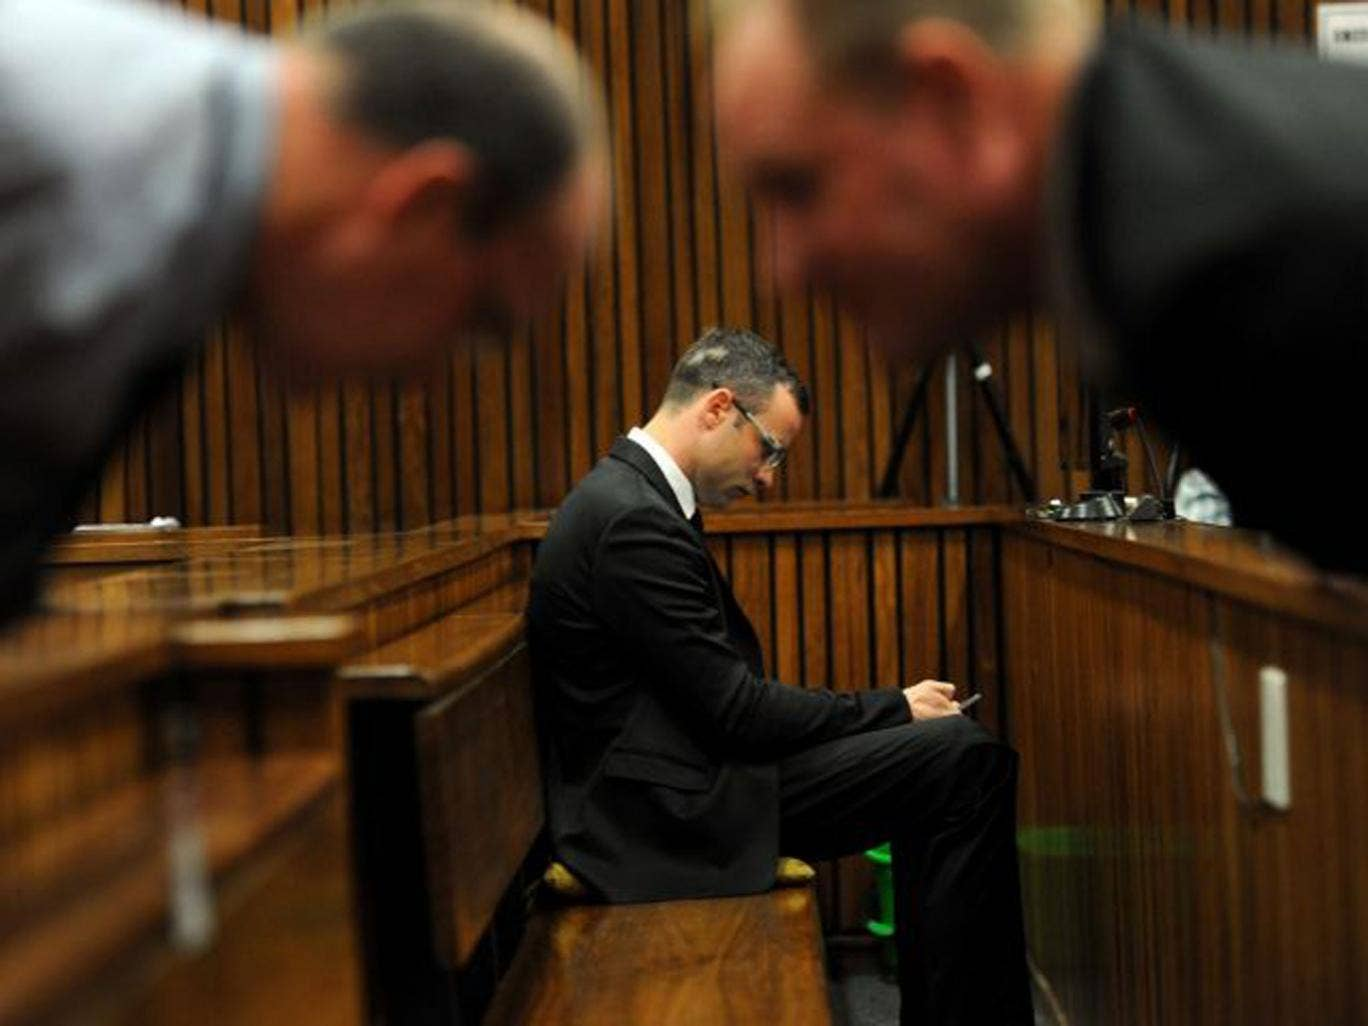 The defence for Oscar Pistorius will now open on 7 April